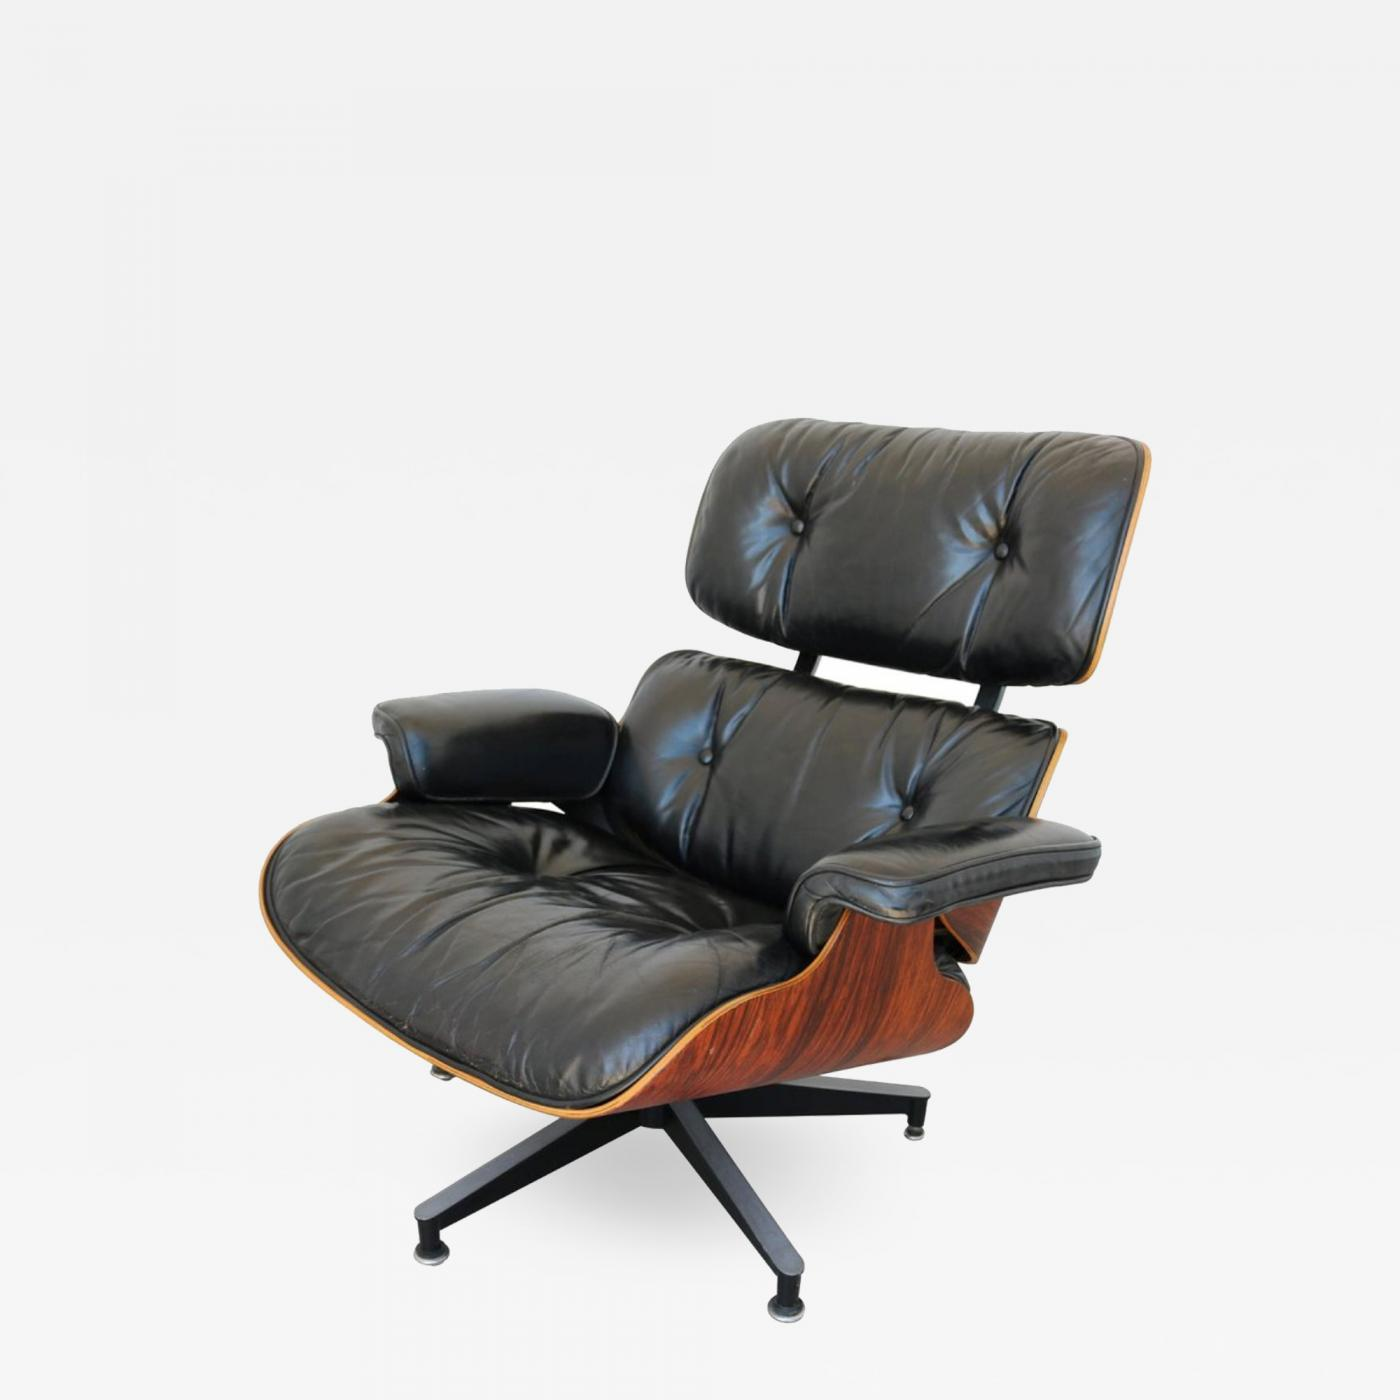 Charles Eames Charles Eames 670 Lounge Chair By Charles And Ray Eames For Herman Miller